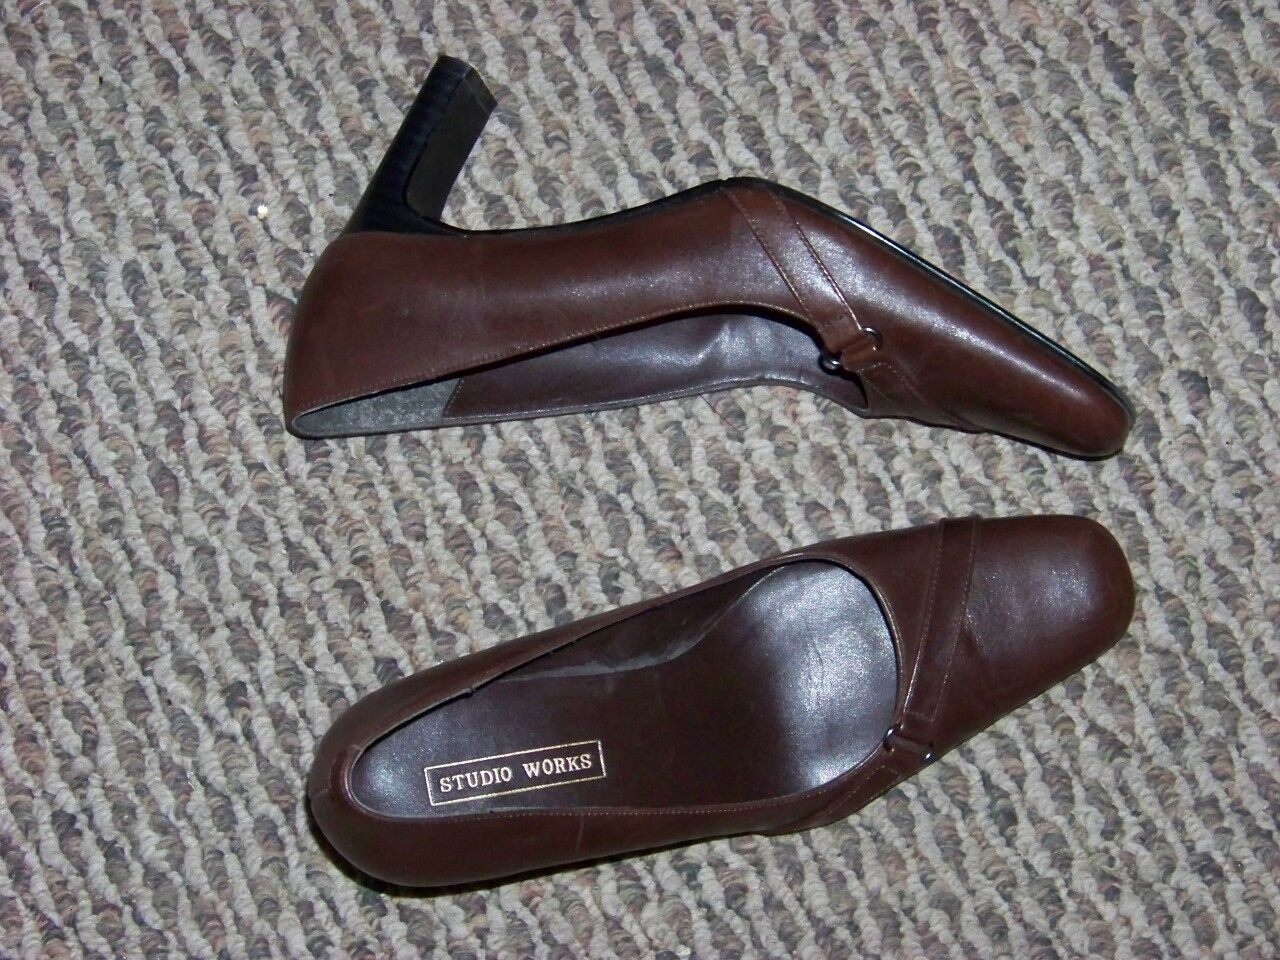 womens angle studio works brown leather angle womens strap heels shoes size 7 1/2 dd40e4